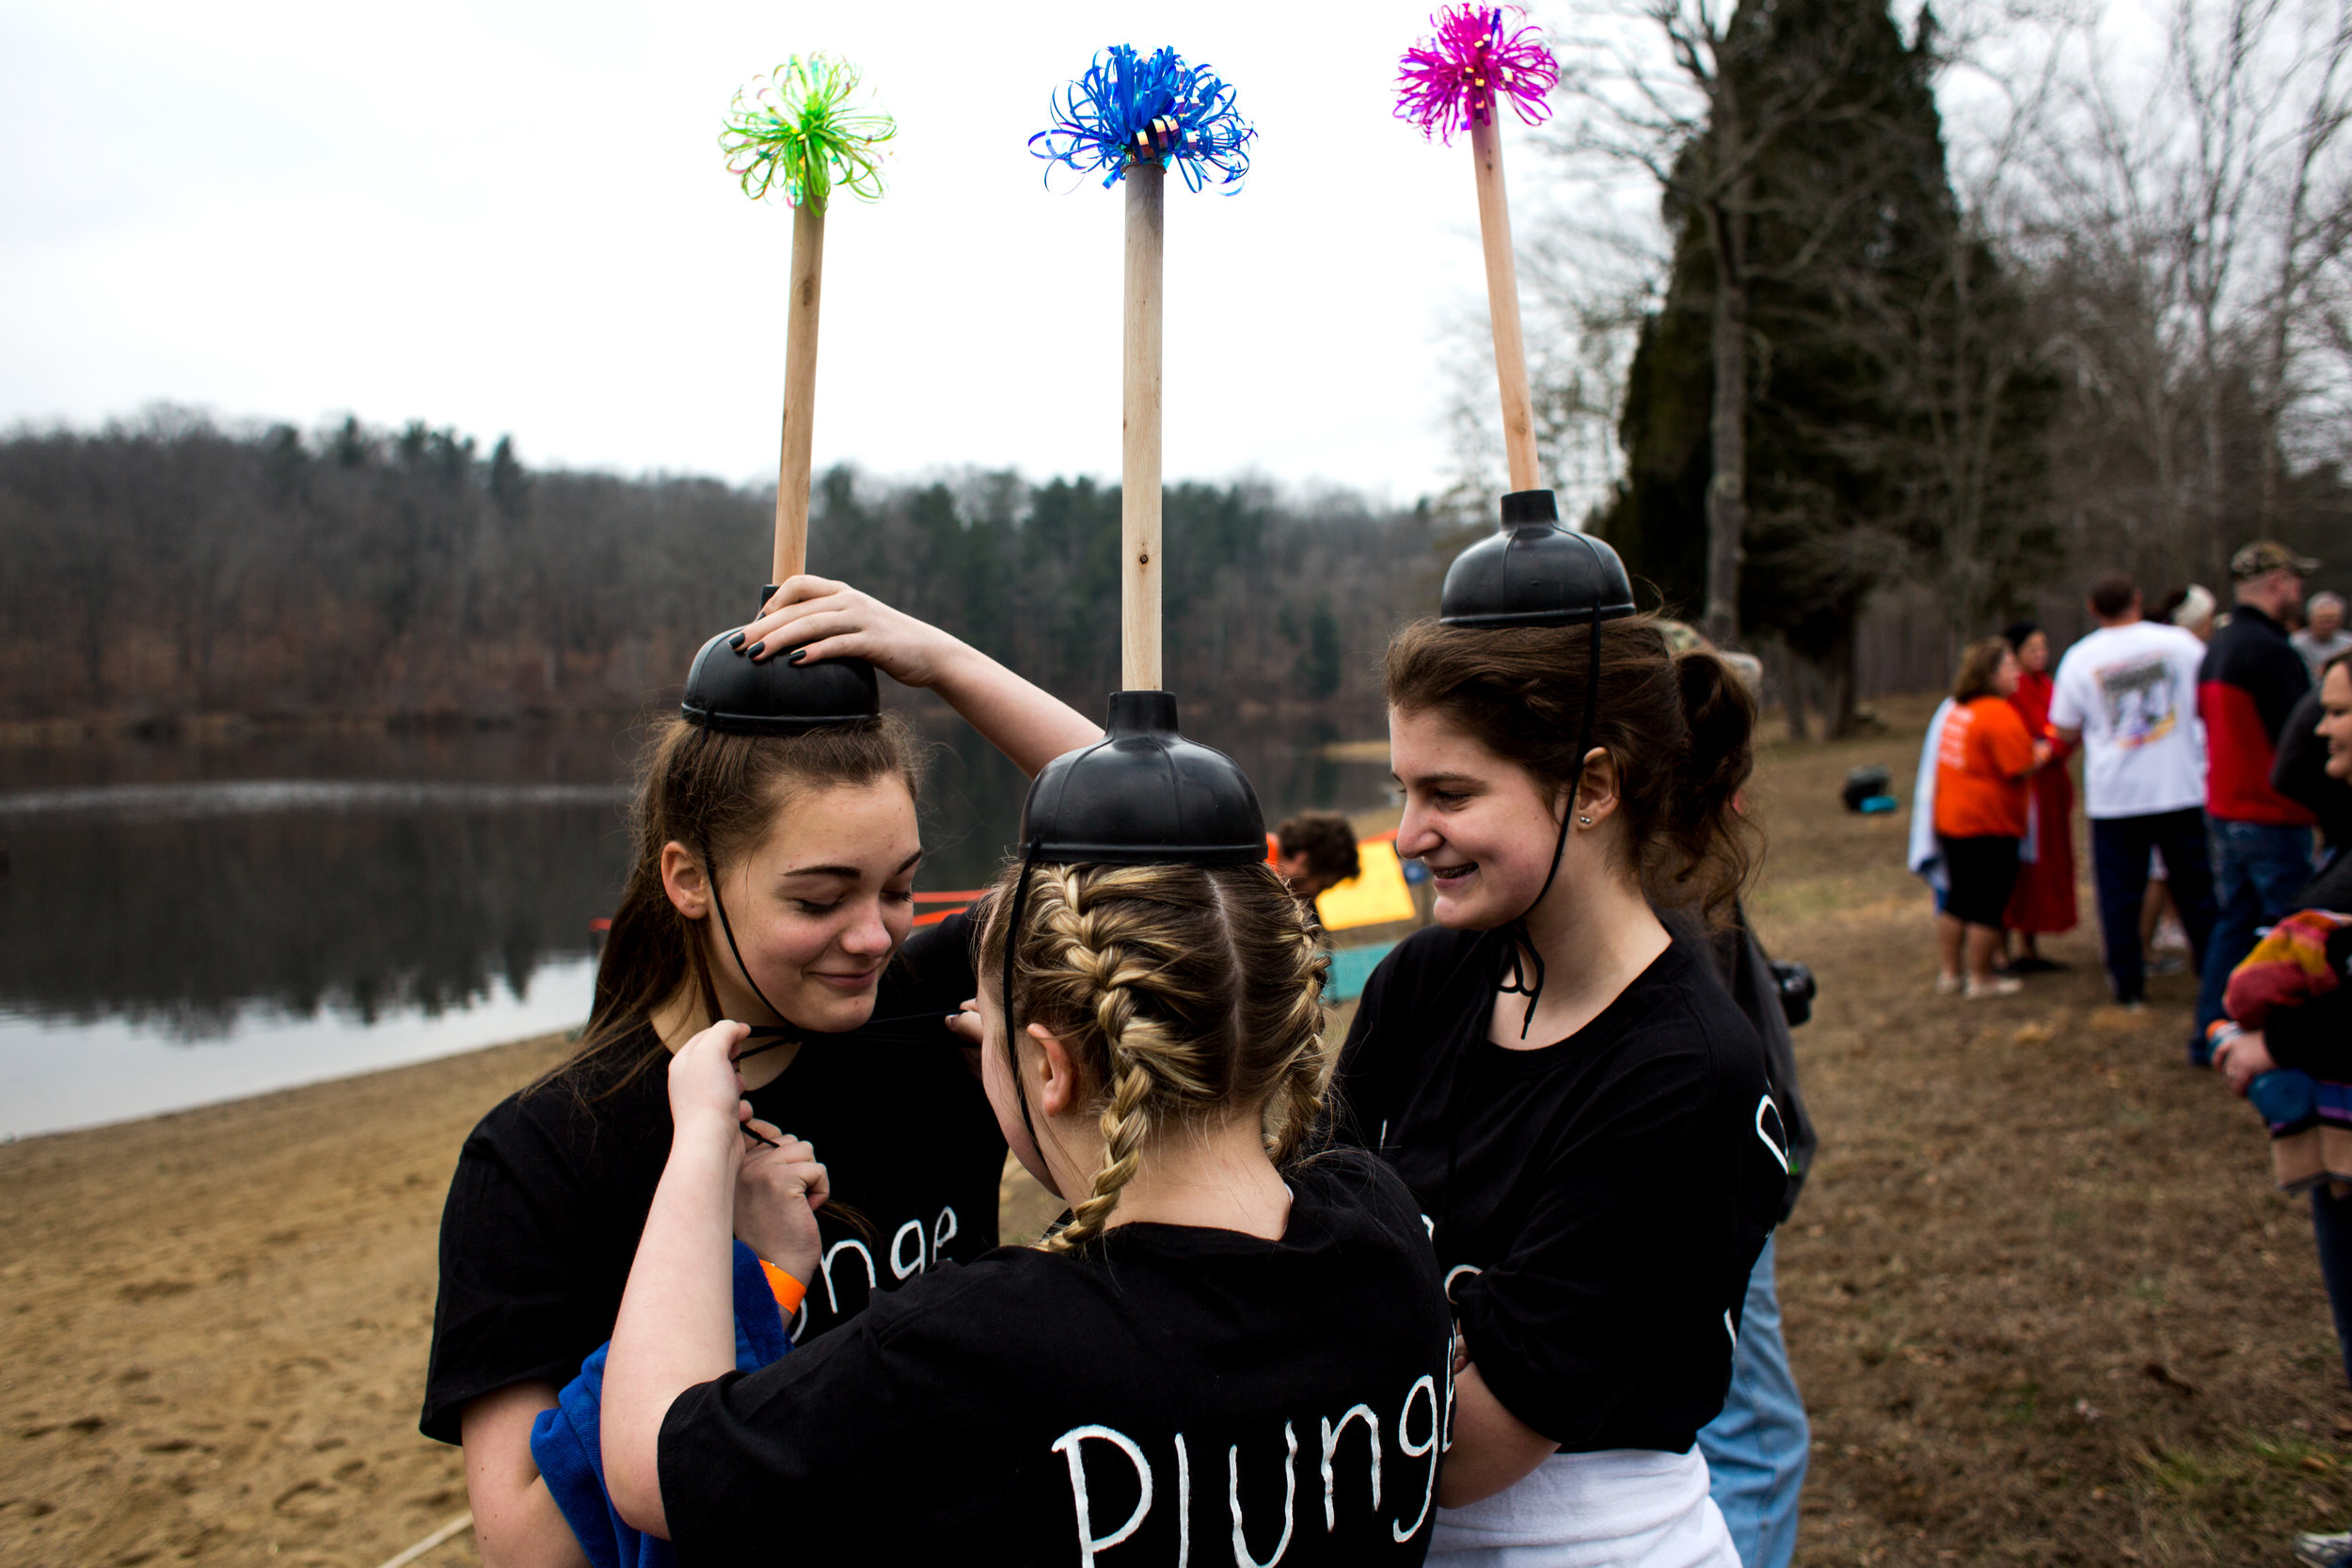 Gracie Graves of Ferdinand, 13, middle, secured a plunger hat on Kristen Detty of Birdseye, 13, before participating with Kendall Barth of Ferdinand, 13, right, in the annual Plunge for Dubois County on Sunday afternoon at Ferdinand State Forest in Ferdinand. Proceeds from the event benefited the Lange-Fuhs Cancer Center, Dubois County Leukemia Association and area food banks.